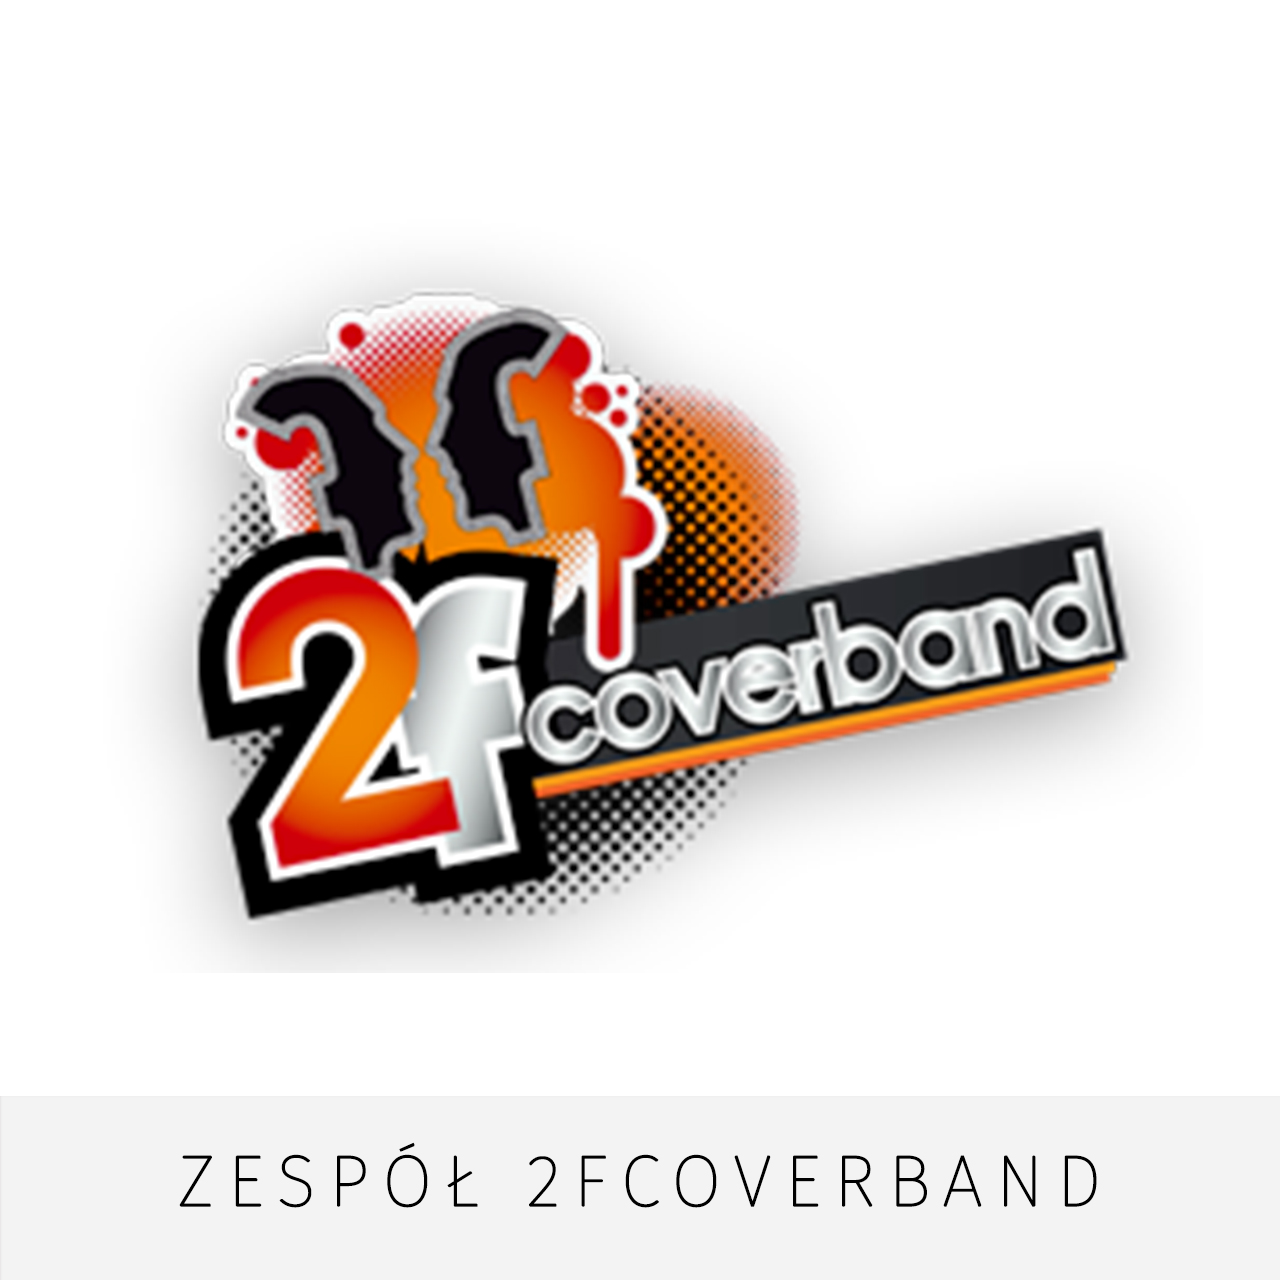 http://www.2fcoverband.pl